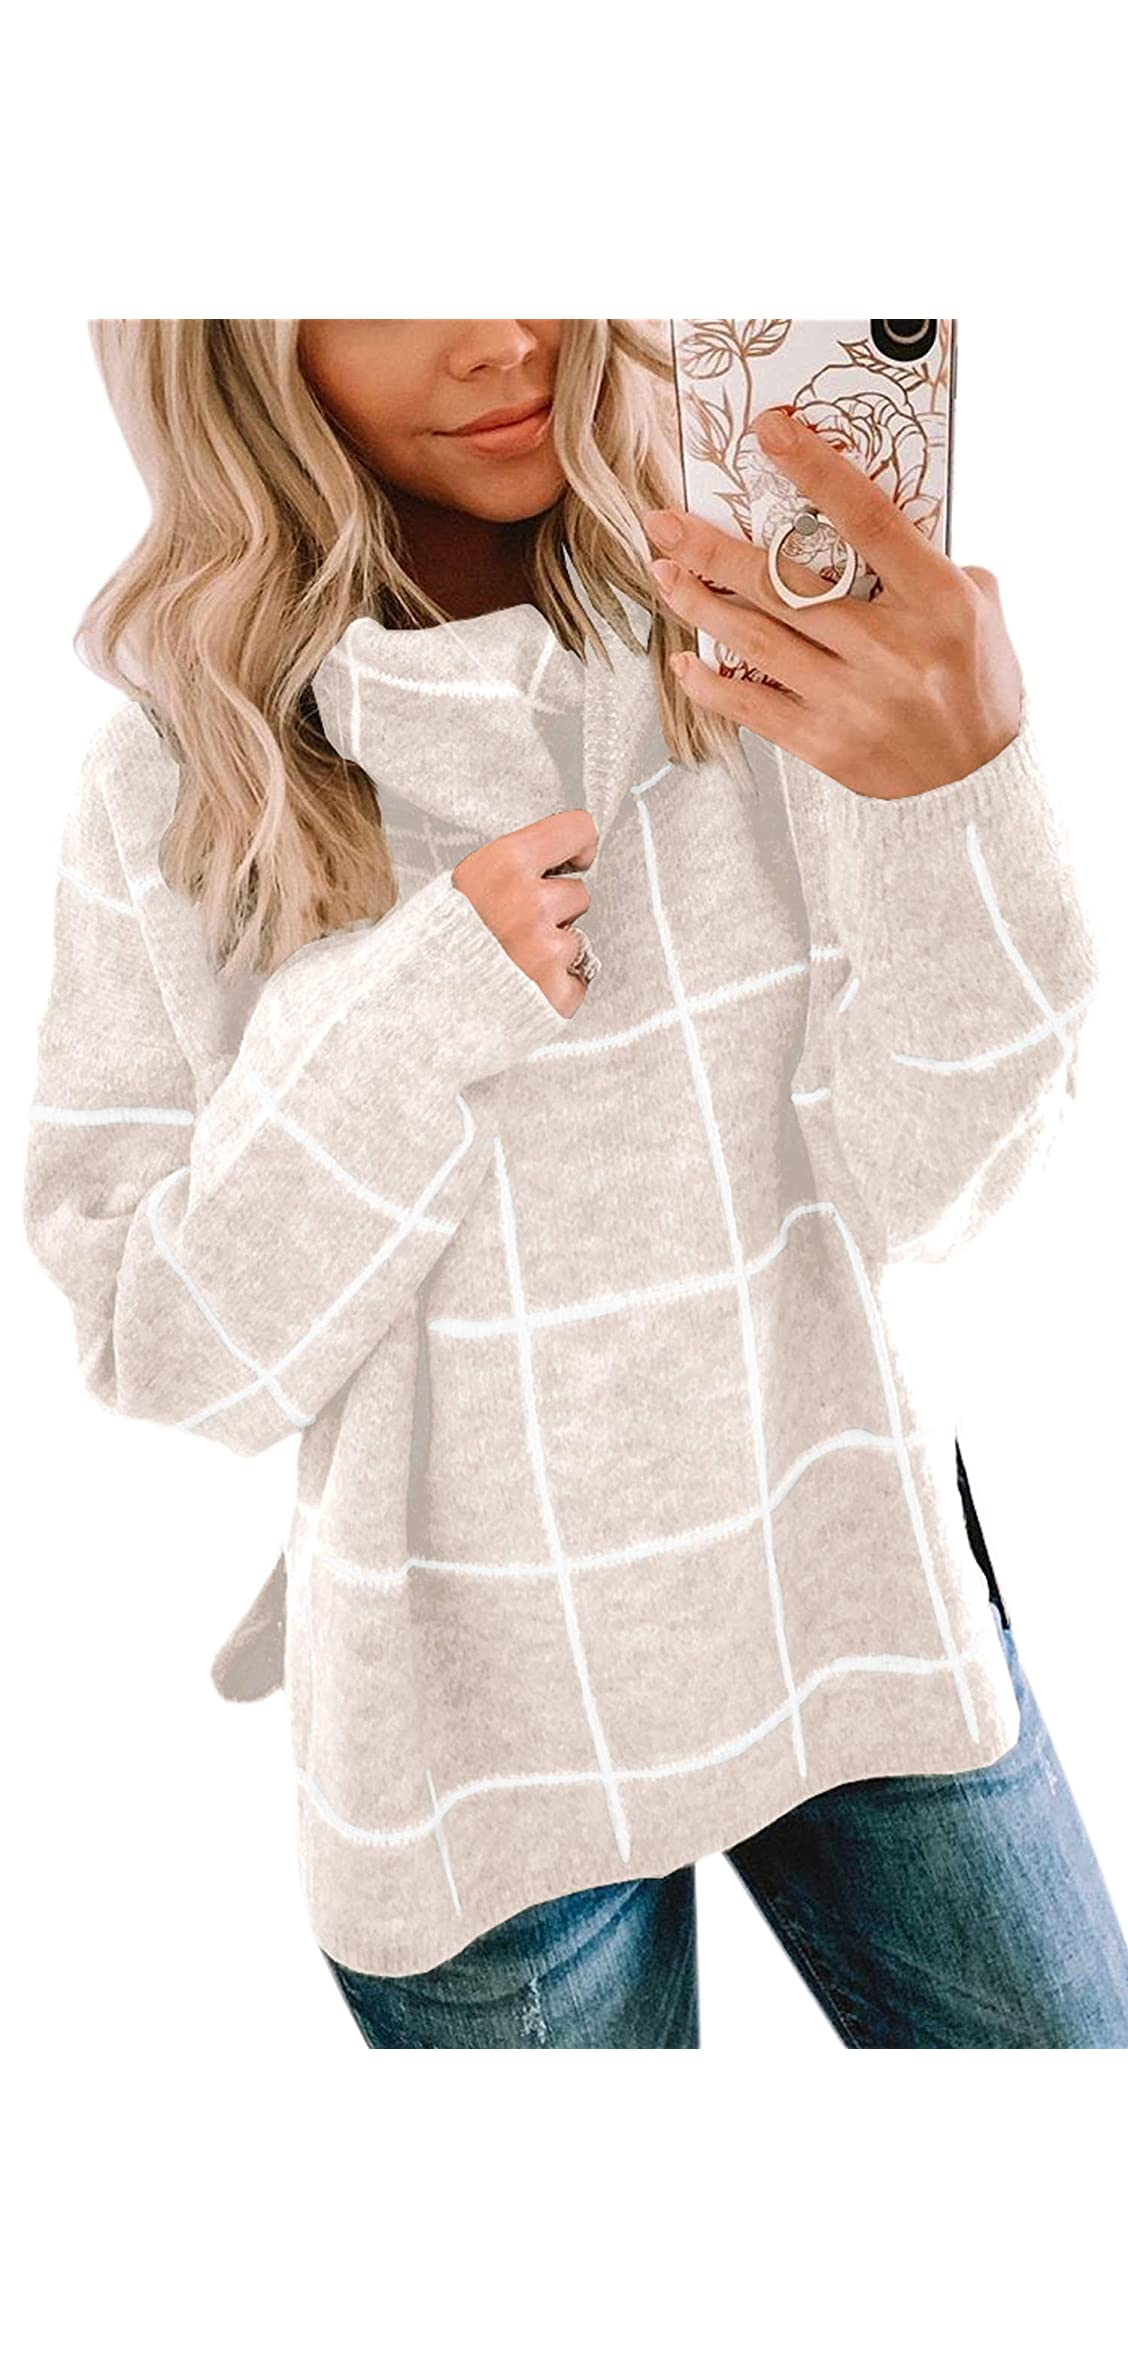 Women Pullover Sweater Turtleneck Plaid Long Sleeve Tops